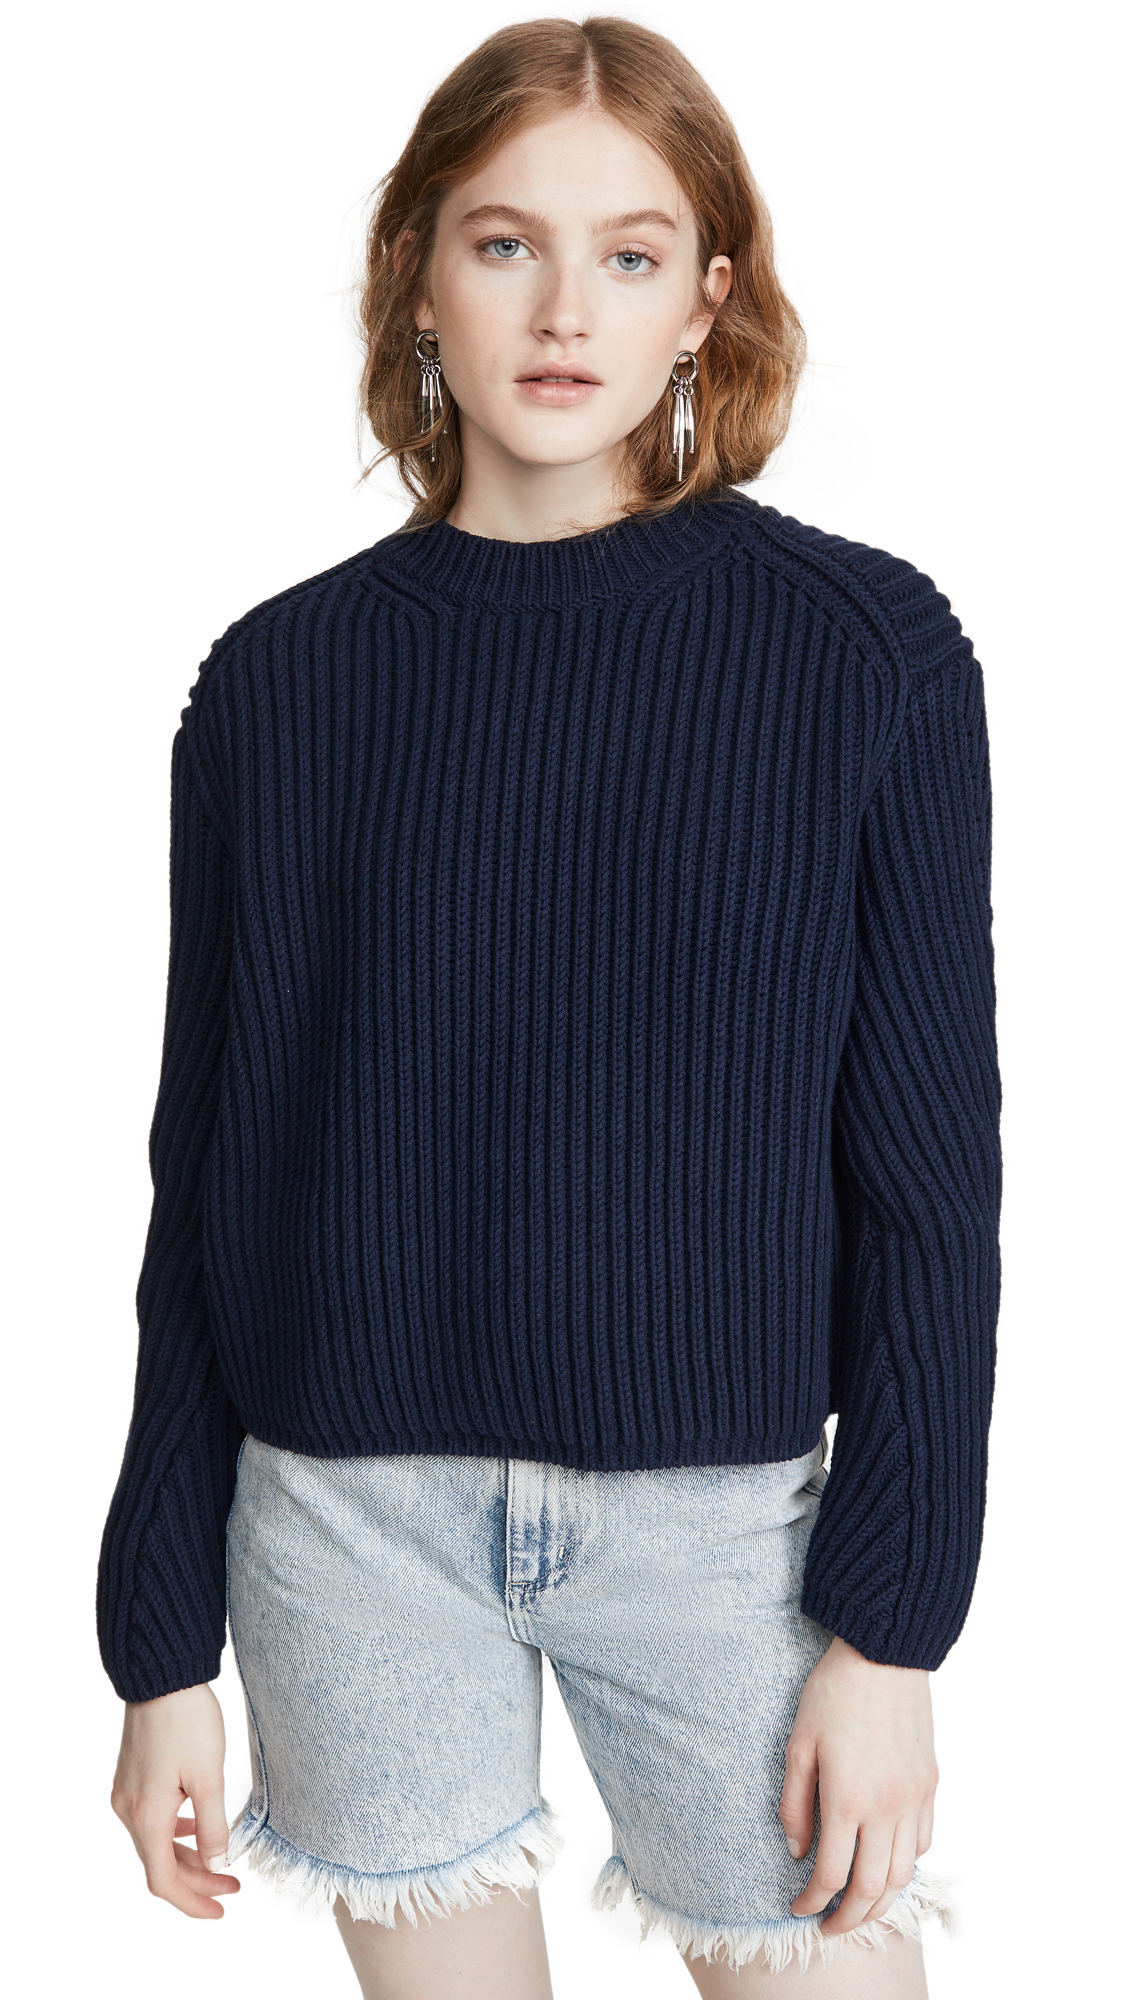 Acne Studios Khali Cotton Rib Sweater